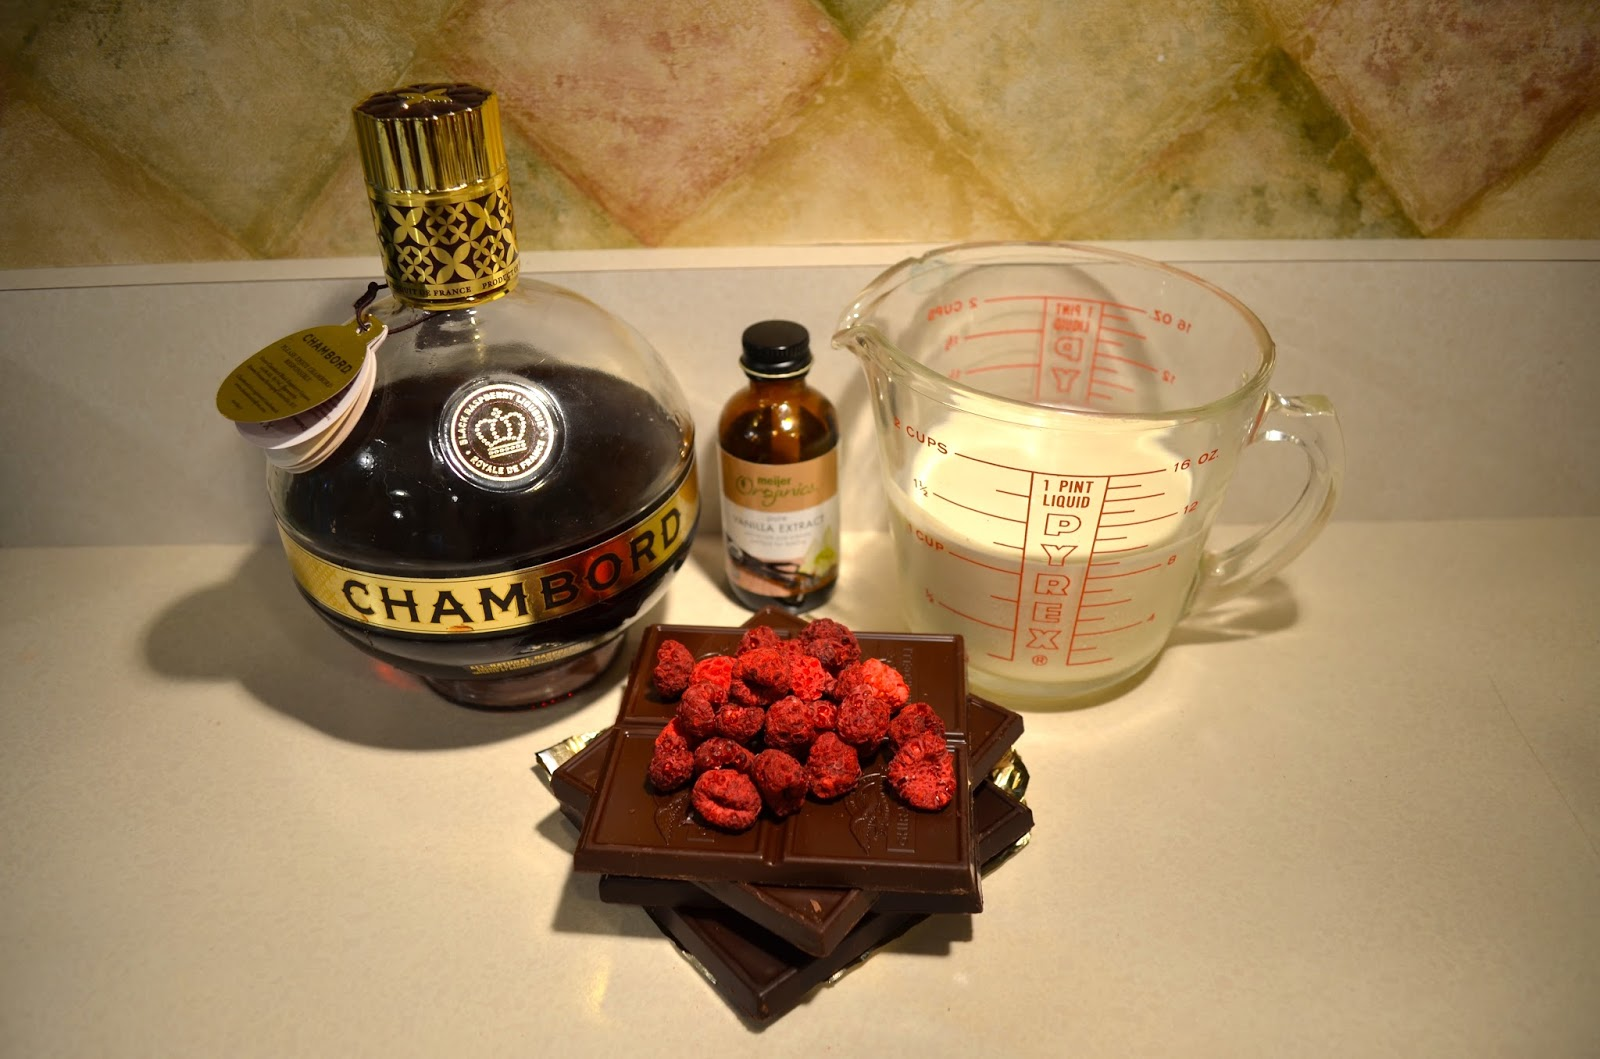 Dark Chocolate Raspberry Truffle ingredients